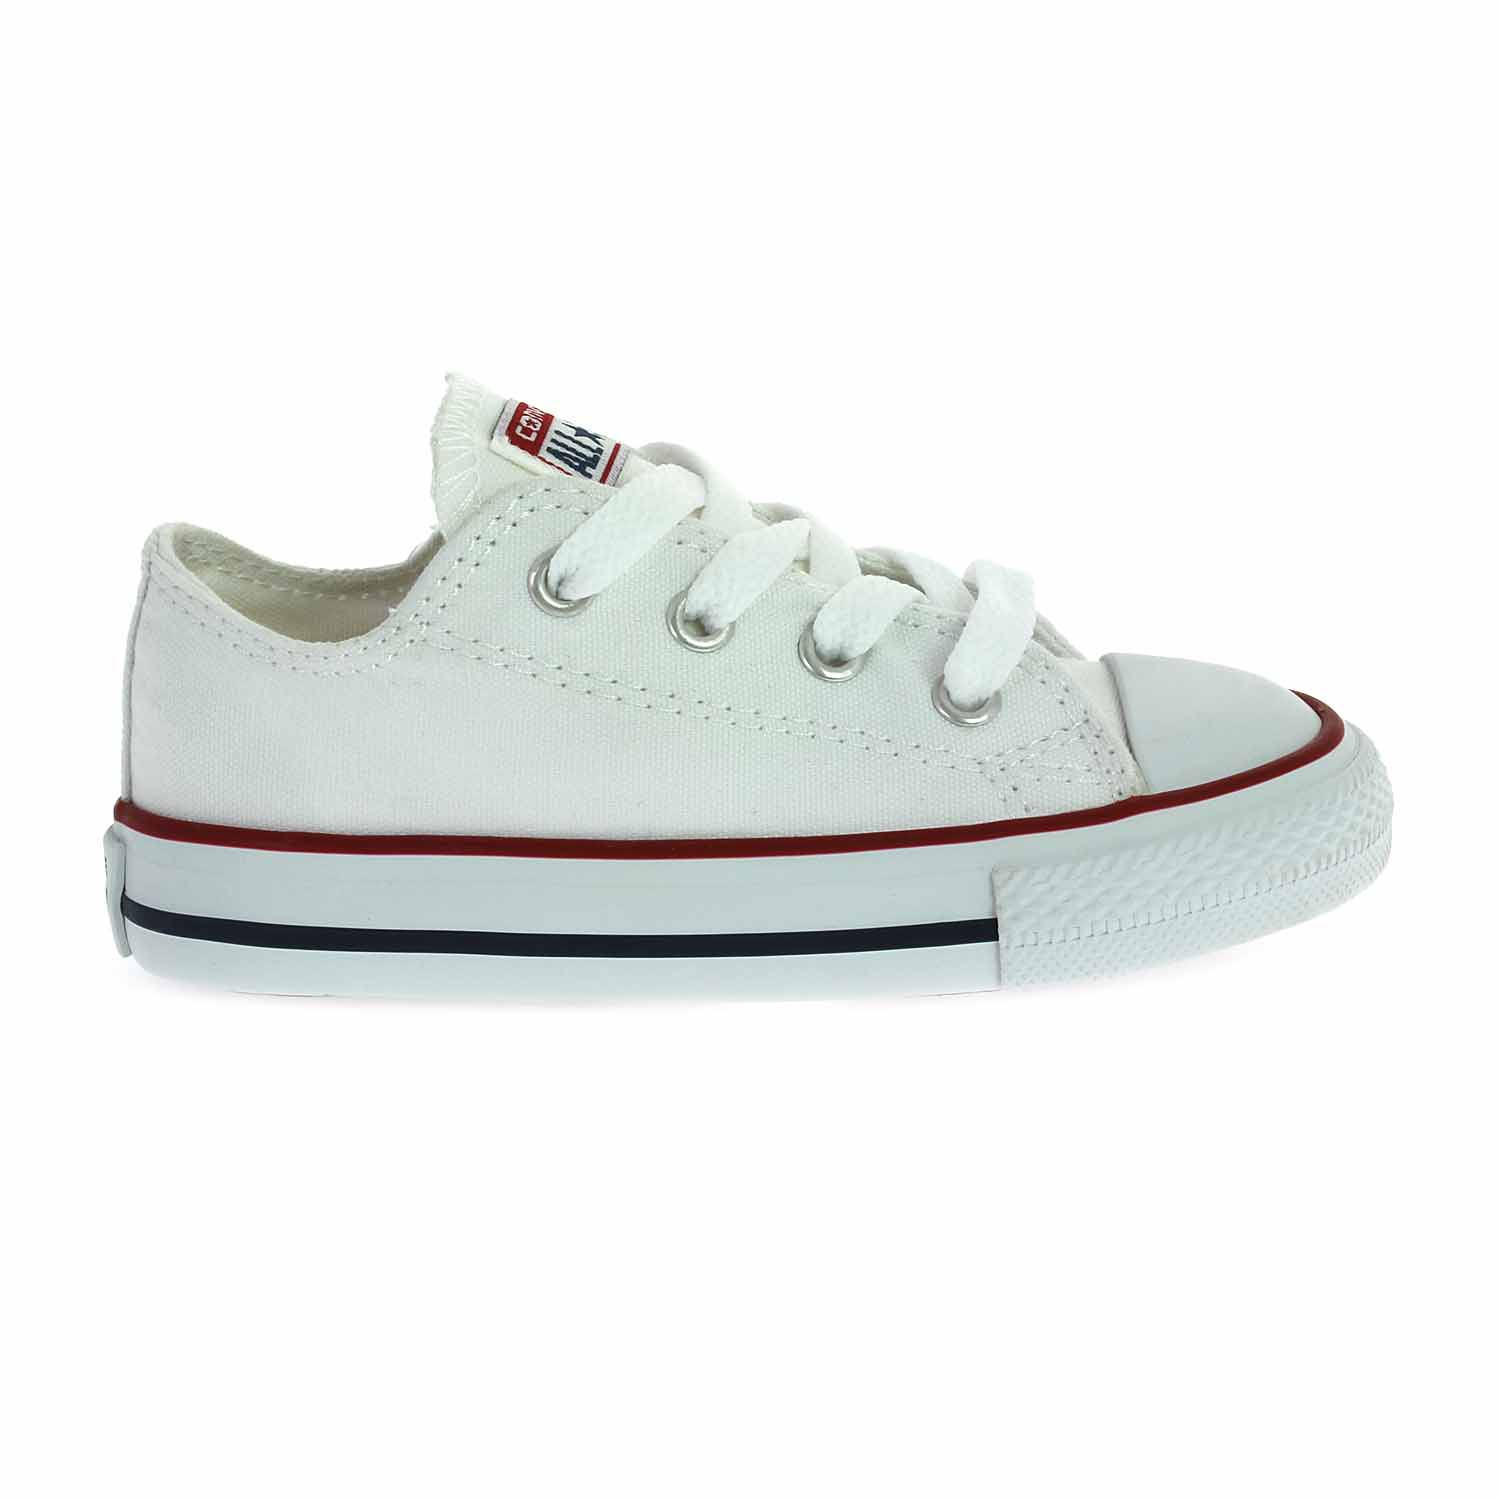 Converse All Star Chuck Taylor Inf ( 7J256C ) παπούτσια    παιδί    βρεφικά  size 17 27